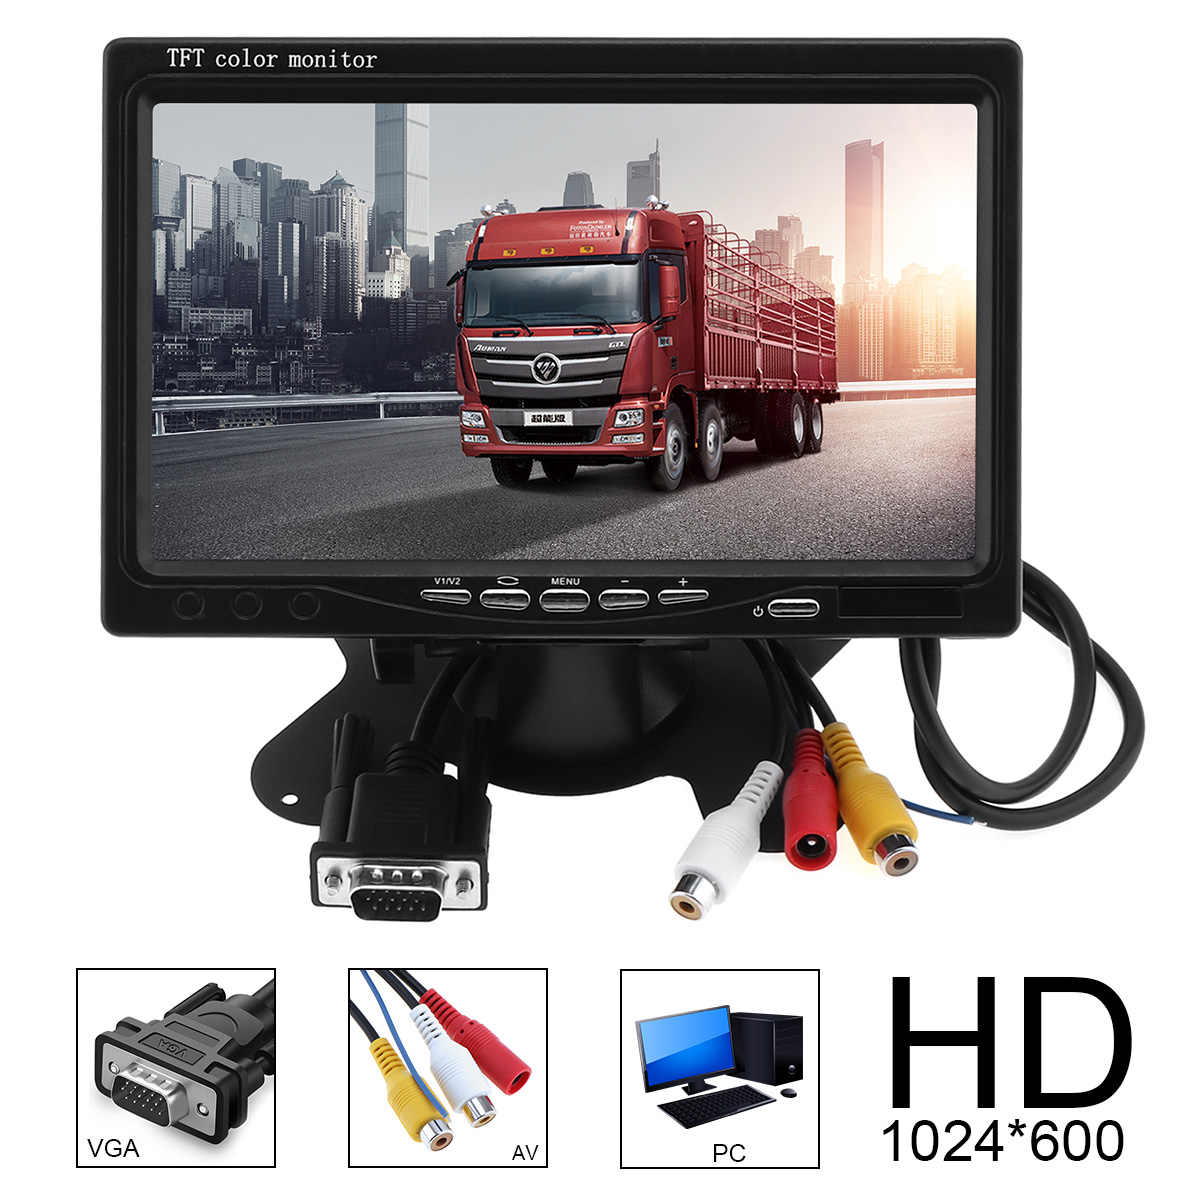 1024x600 7 pulgadas Ultra delgada pantalla LCD de TFT HD Monitor de Audio Video AV coche Monitor Color brillante con interfaz VGA